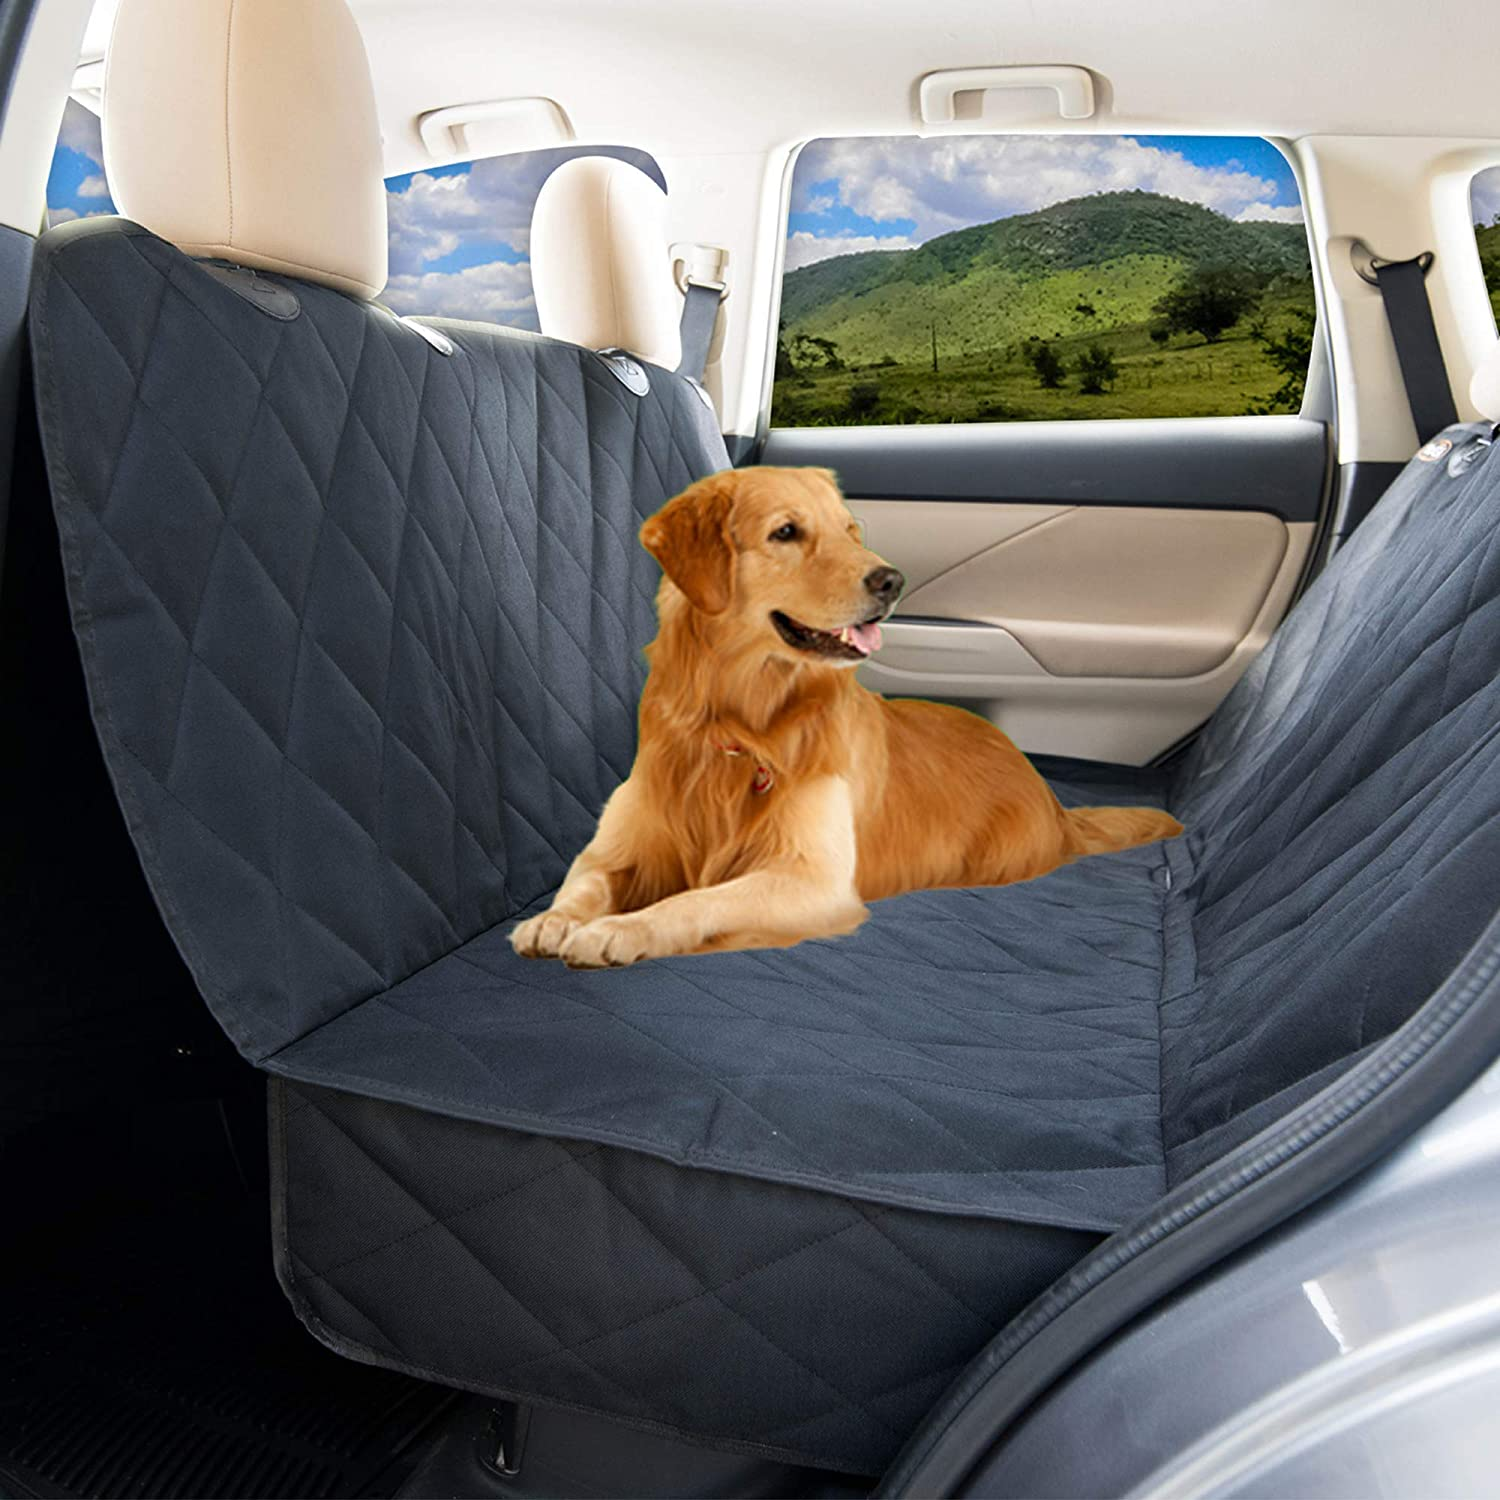 Dog Seat Covers For Trucks >> Dog Seat Covers For Cars By Yogi Prime Luxury Dog Car Hammock Style Waterproof Car Seat Covers For Dogs Pet Seat Protectors For Trucks Suvs Xl